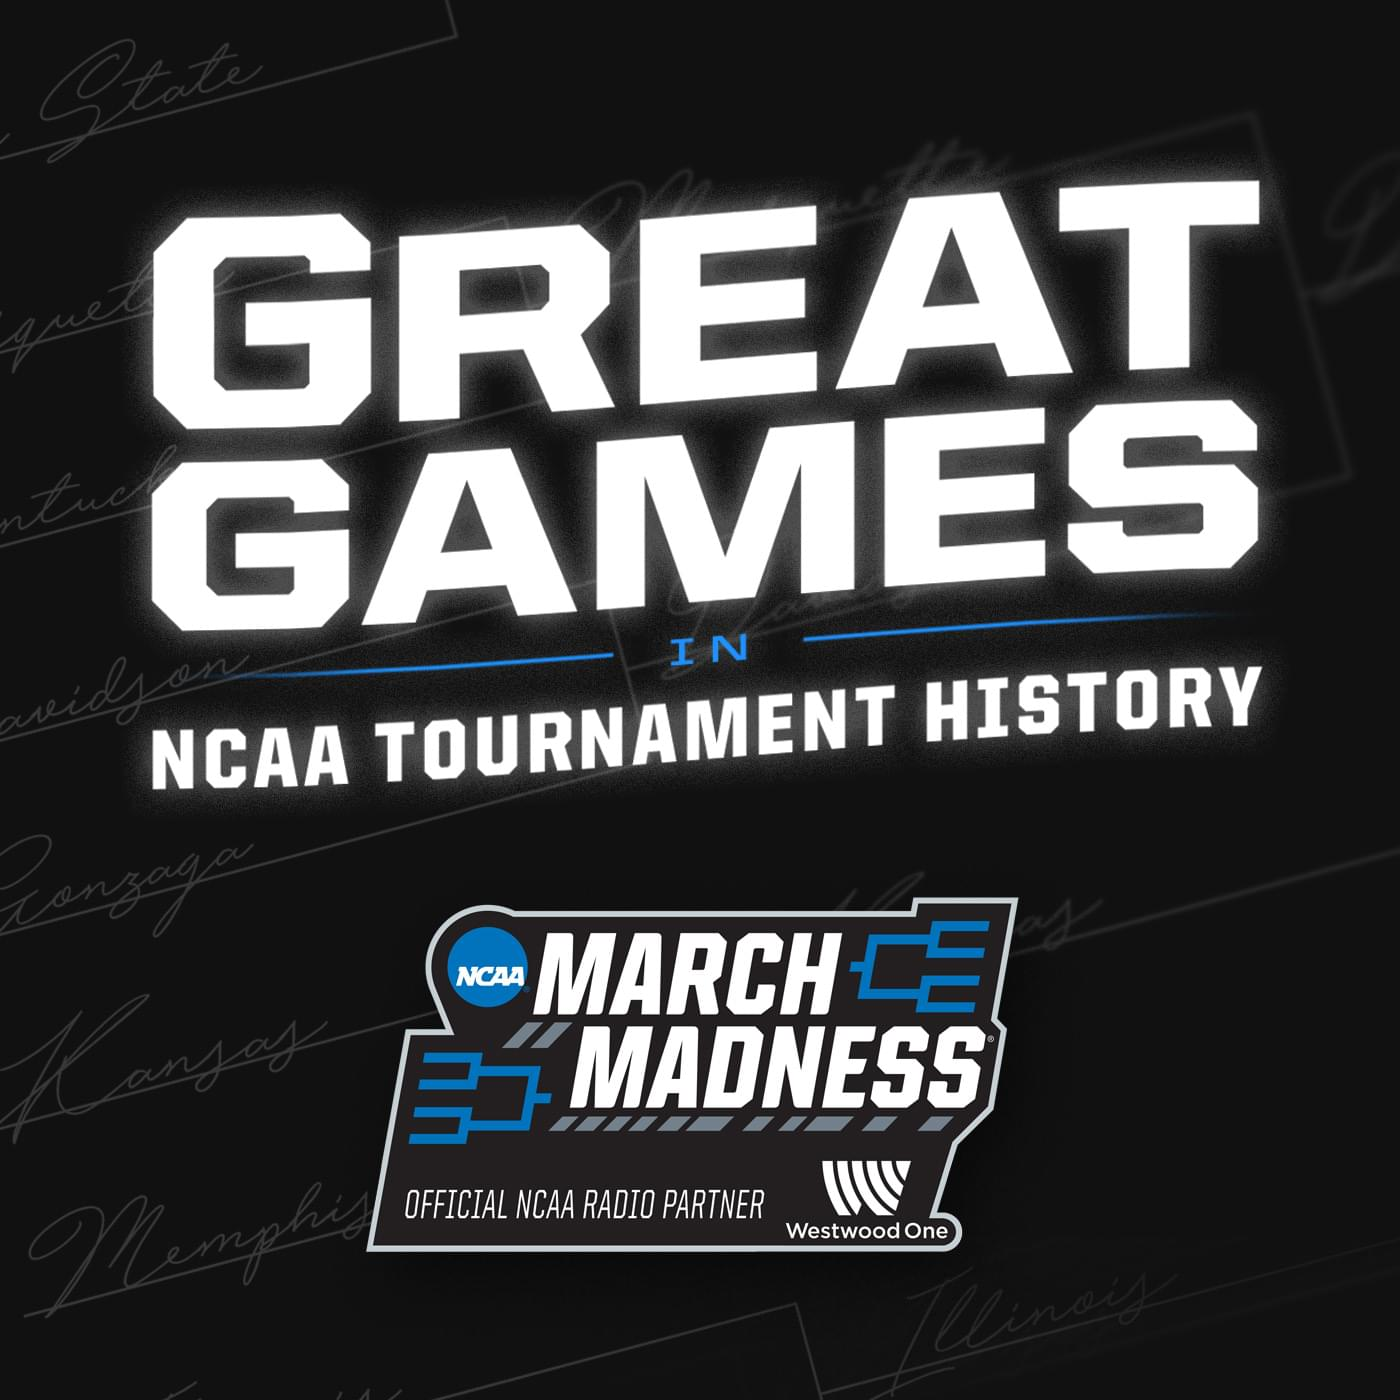 NCAA Great Games in Tournament History!